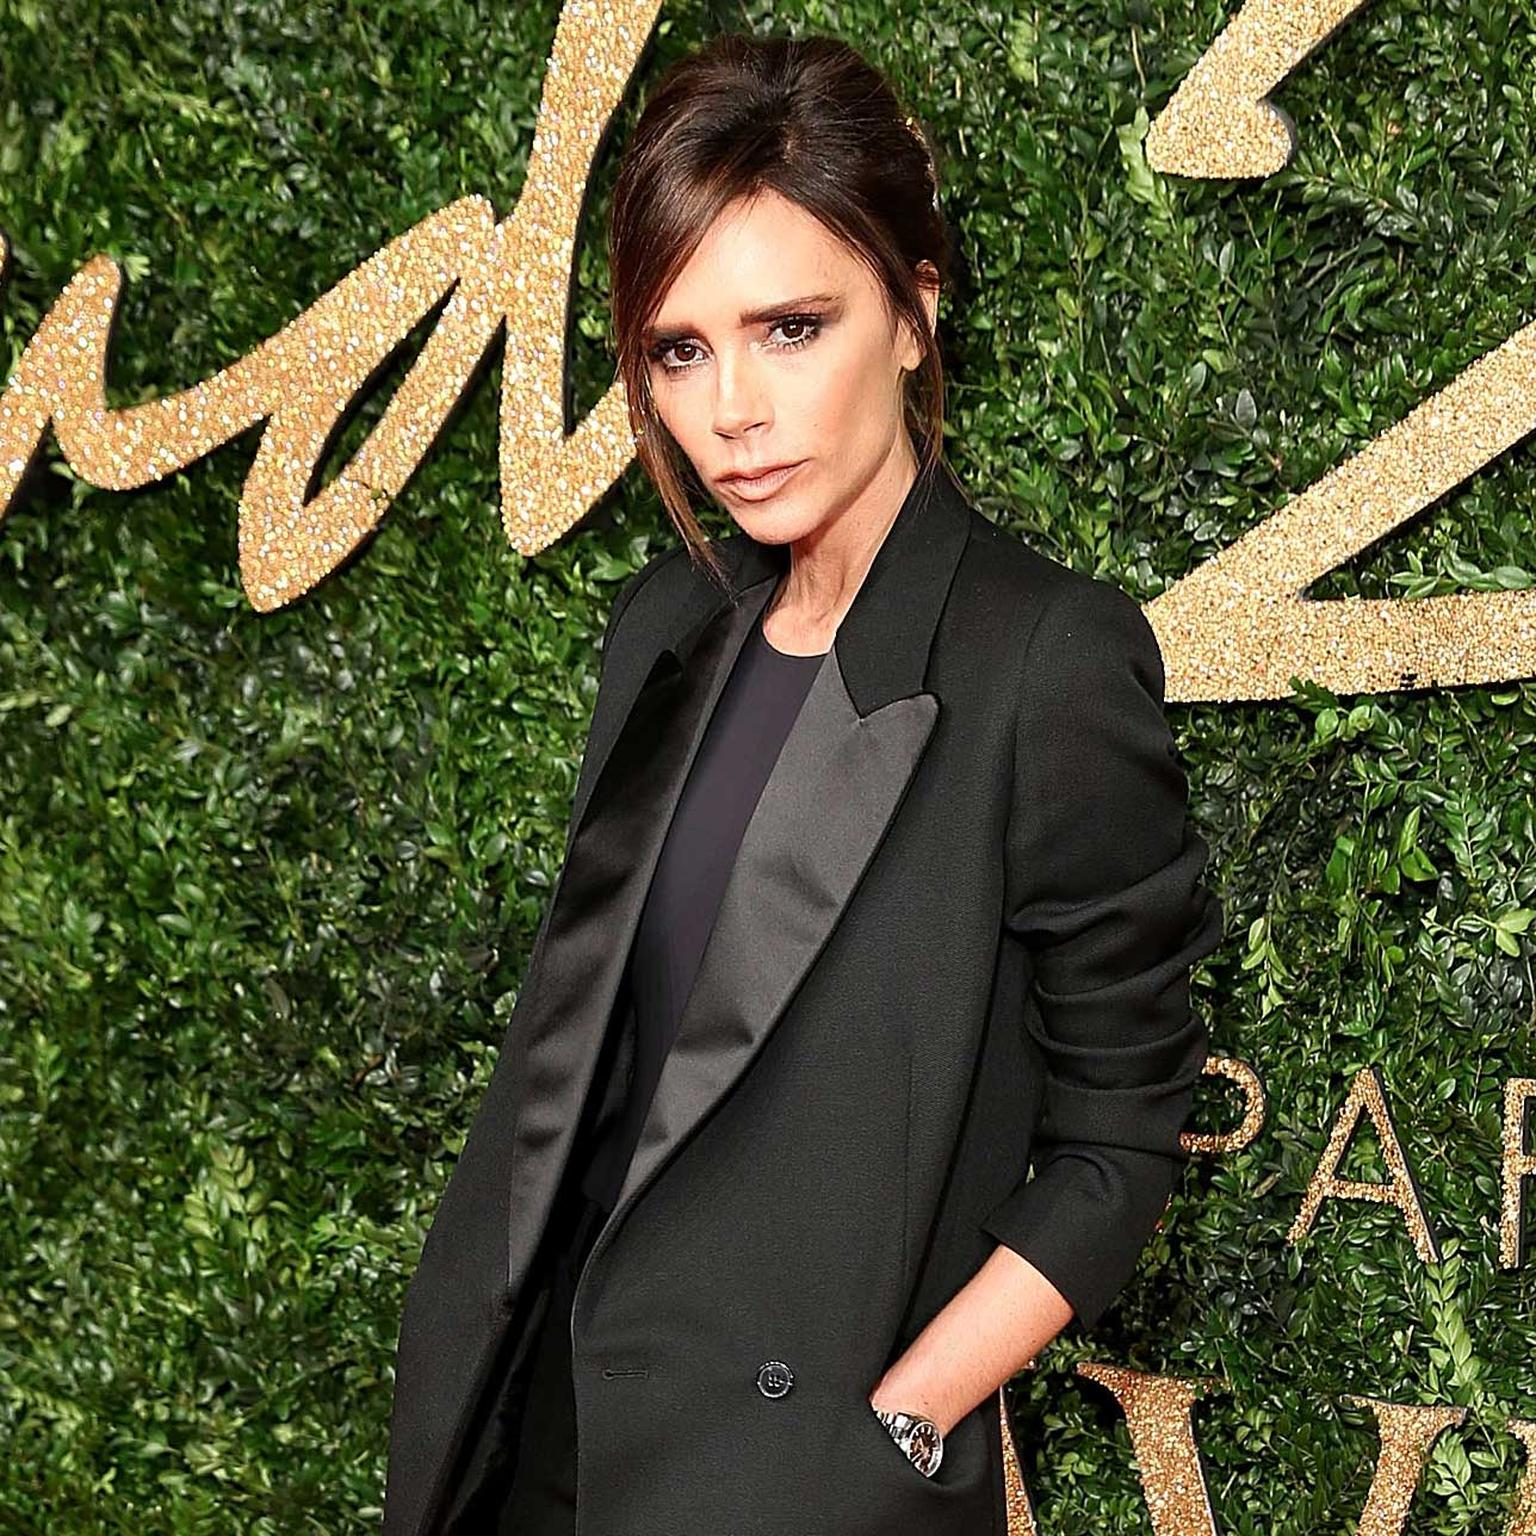 Victoria Beckham accessorised with a Rolex watch at the British Fashion Awards